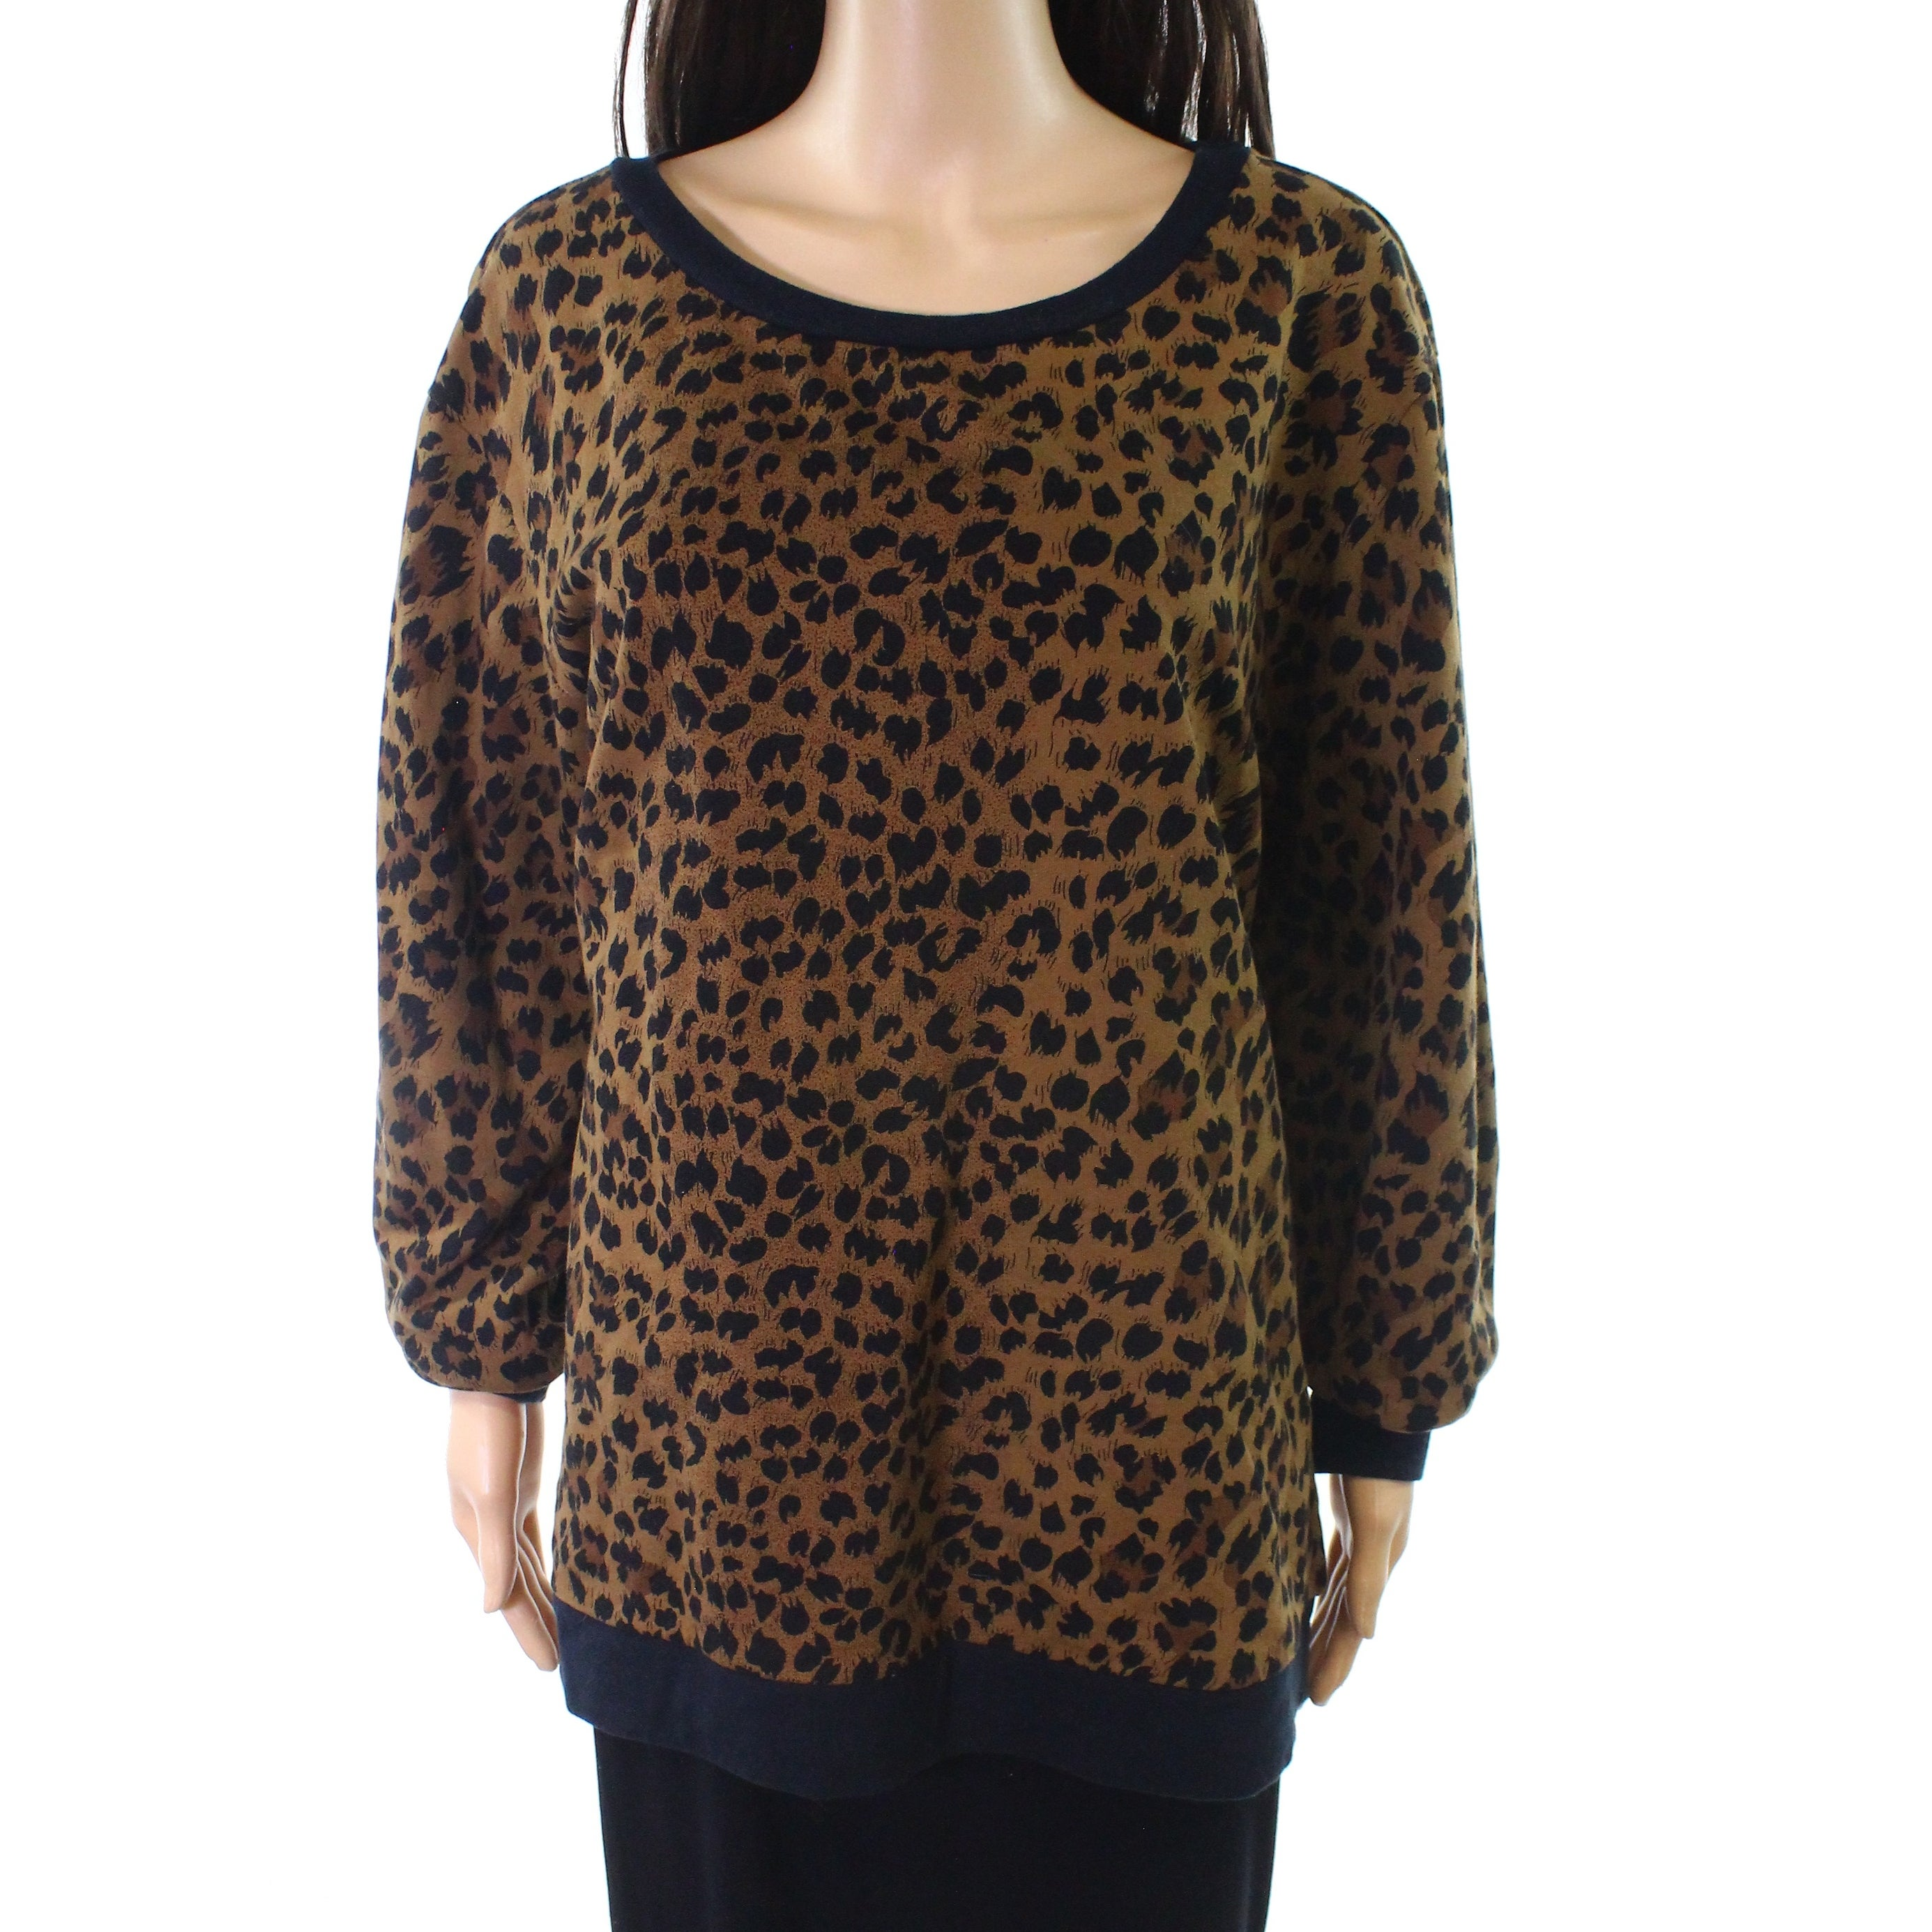 Joie new brown womens size animal print pull over crewneck sweater free  shipping on orders over 0c221fb26